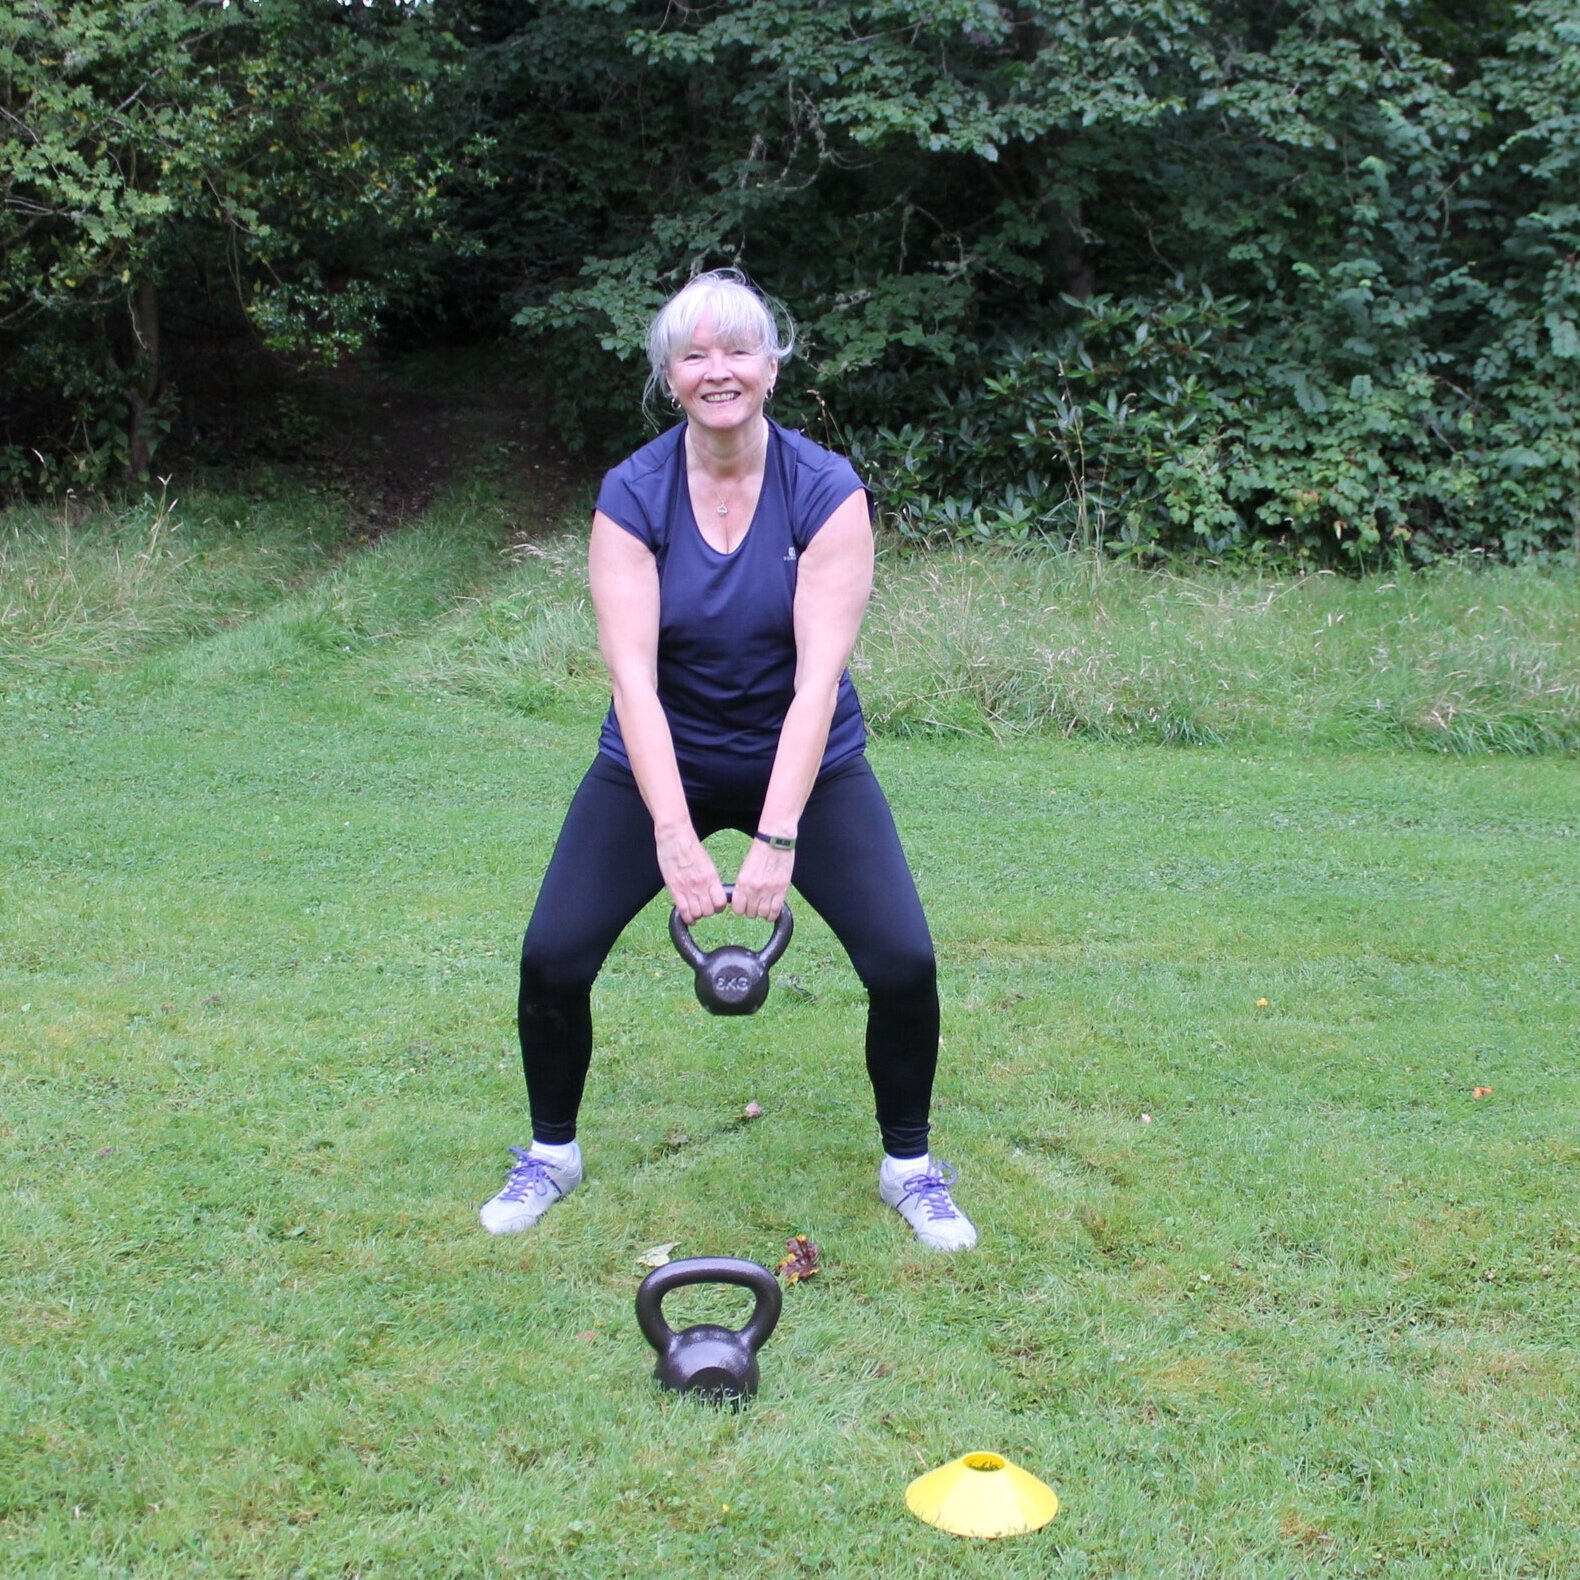 Ann - Ann proved that age is just a number. At 65 she came on a boot camp and committed to a week of fitness and fun. She did everything with a smile and was voted 'most caring' by all her peers! She lost 2.1kg (4.6lbs) and went home feeling trim and toned.